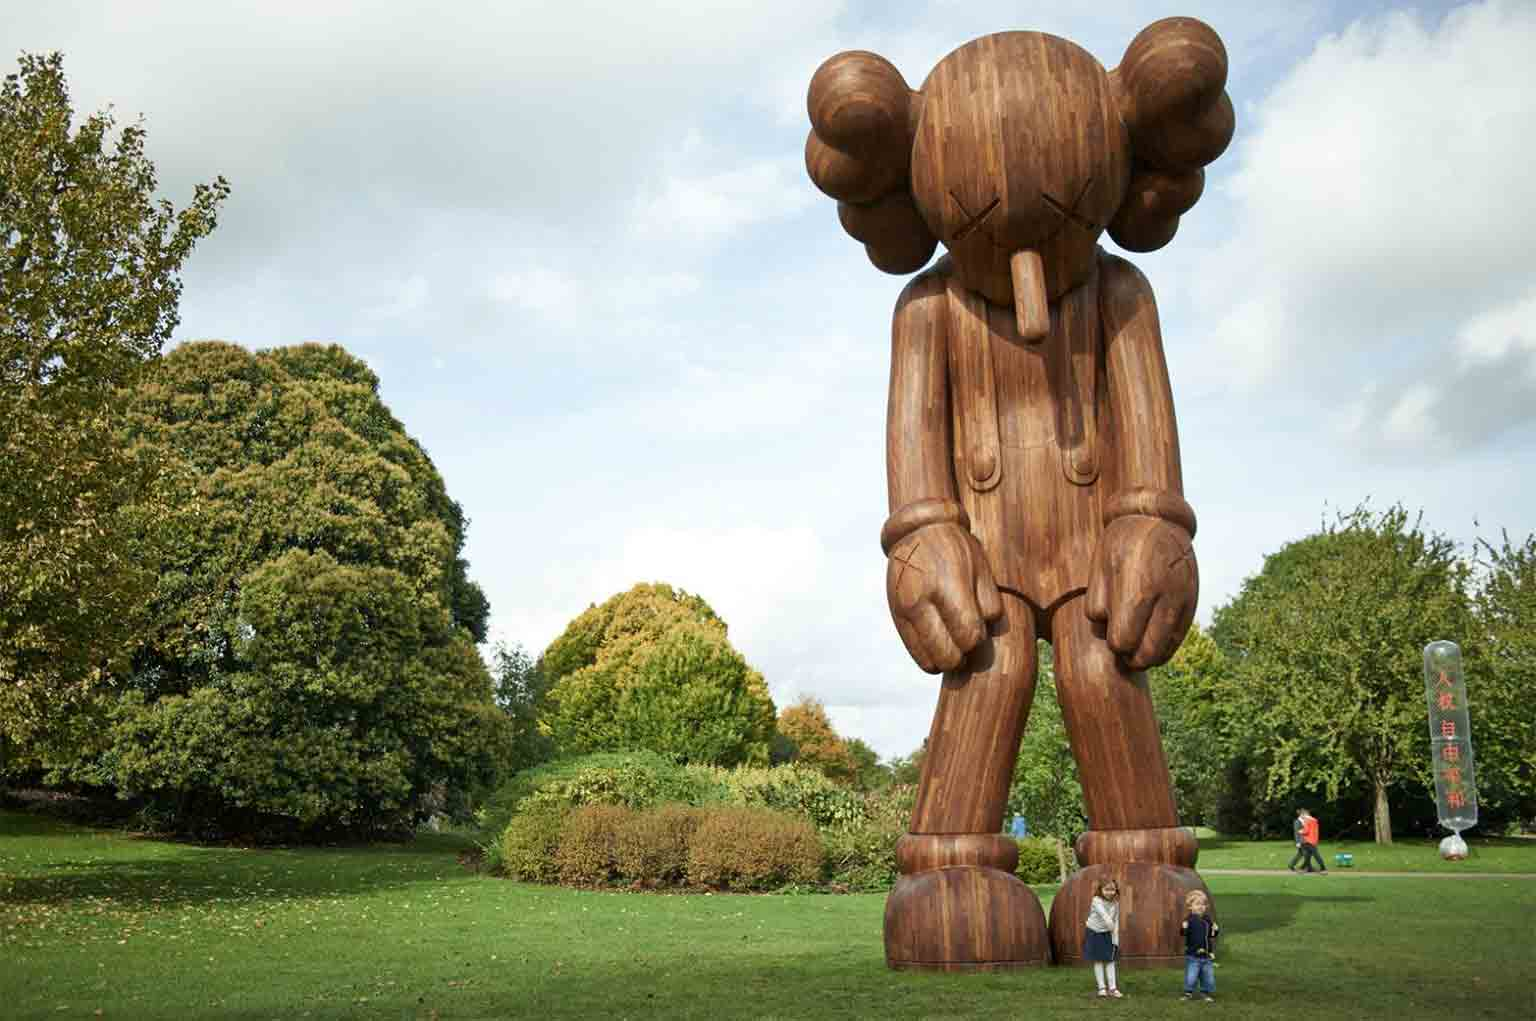 3. KAWS, Yorkshire Sculpture Park. Free to all - KAWS, Small Lie, 2013. Courtesy the artist and YSP